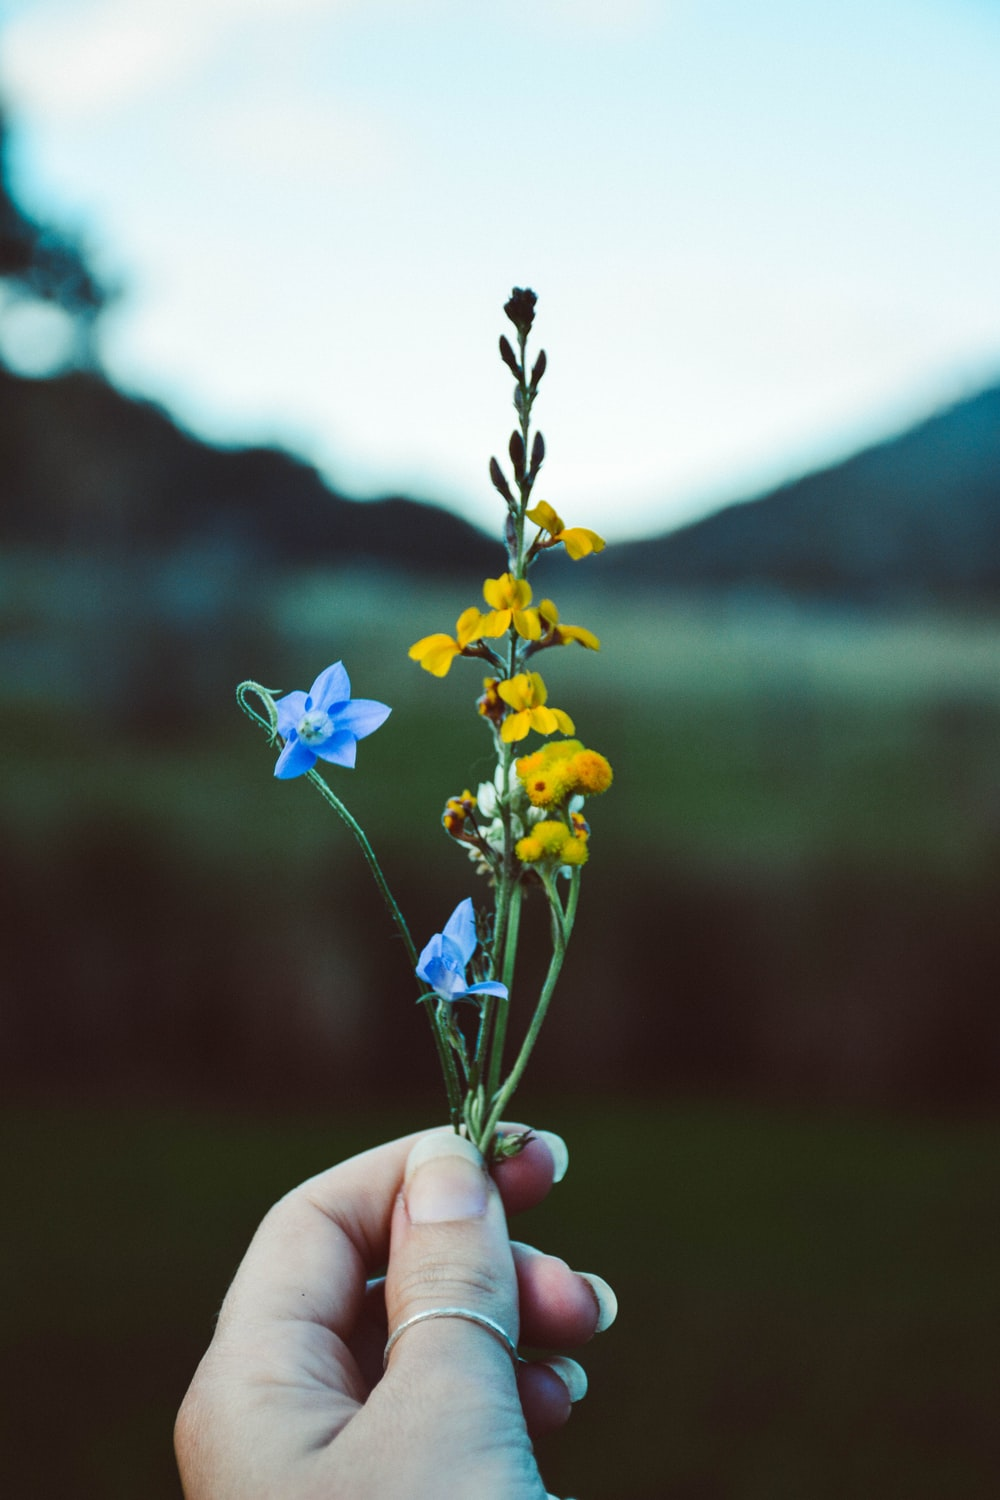 person holding yellow and blue petaled flowers